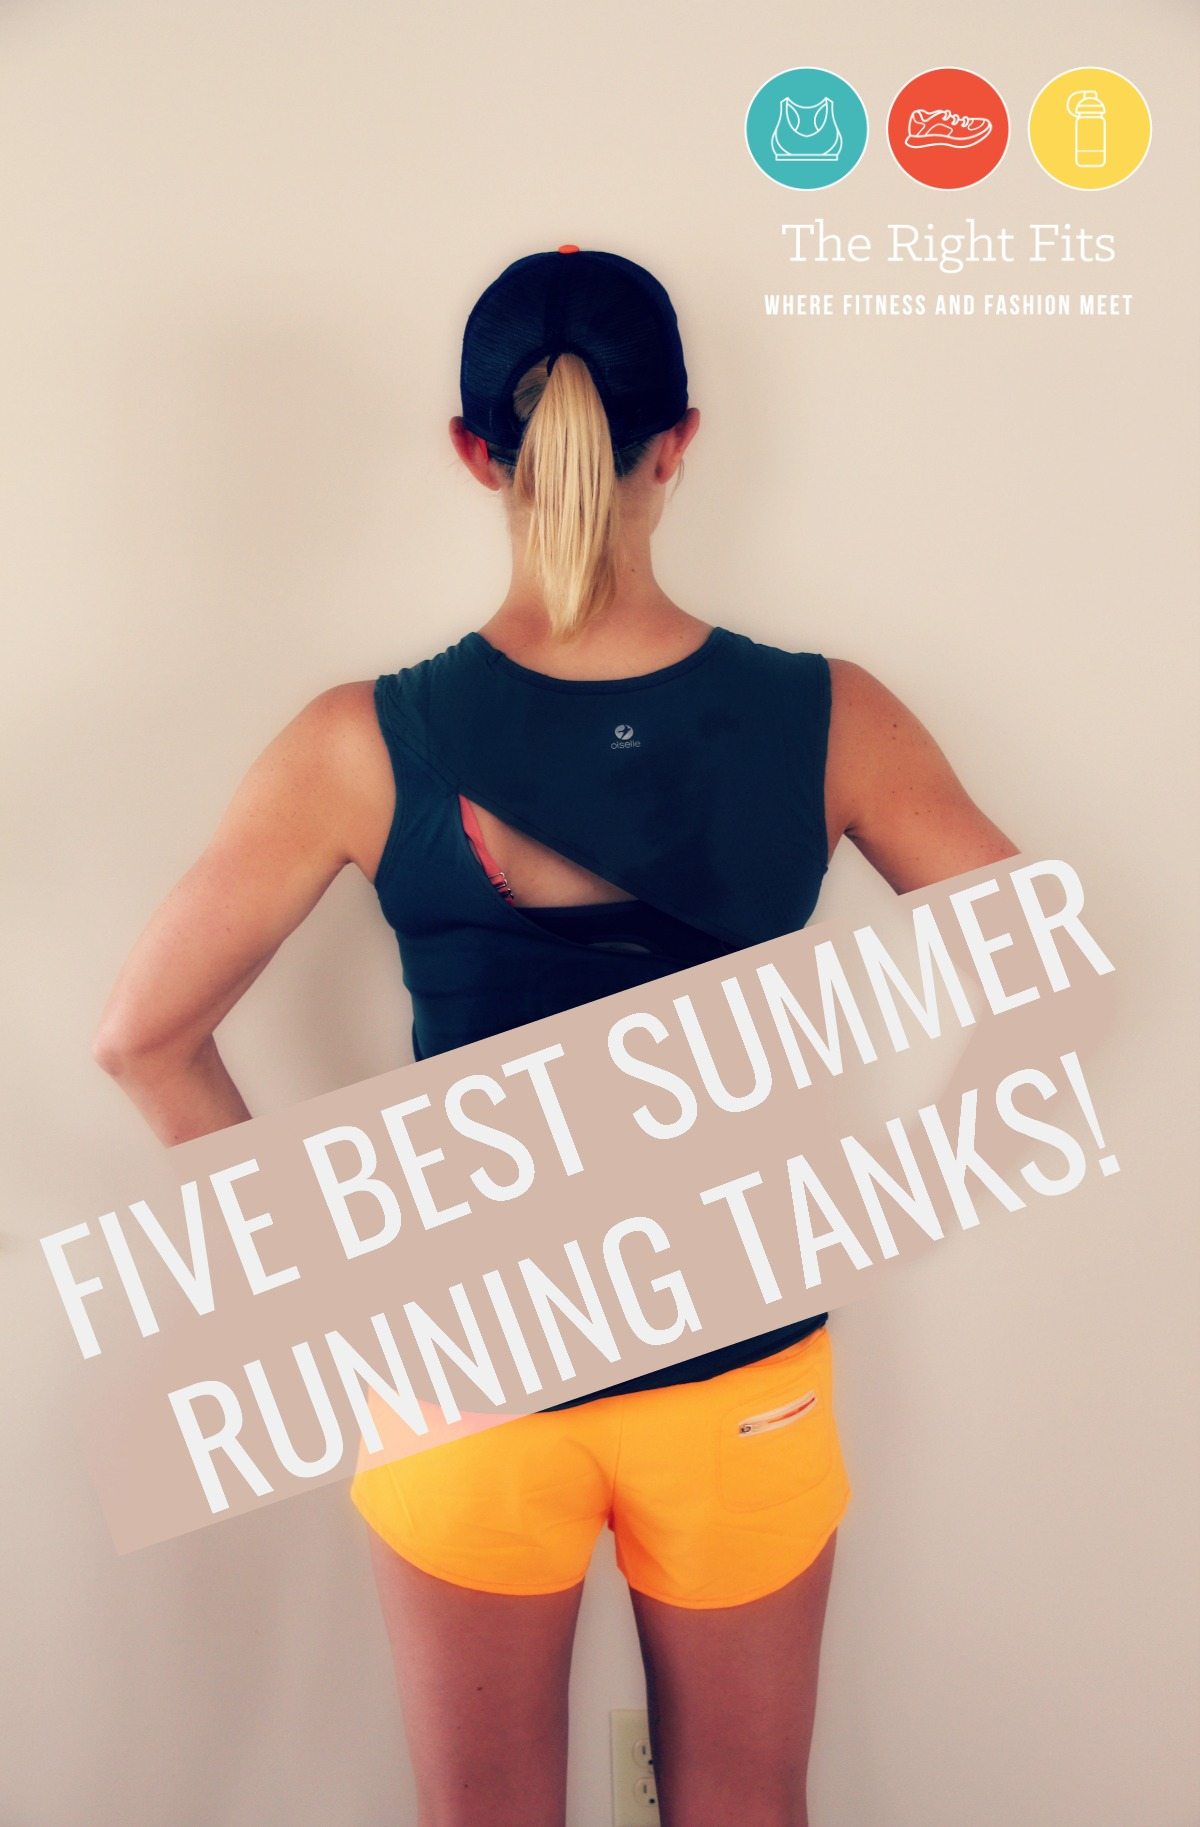 Fitness Fashion: The Five Best Summer Running Tanks